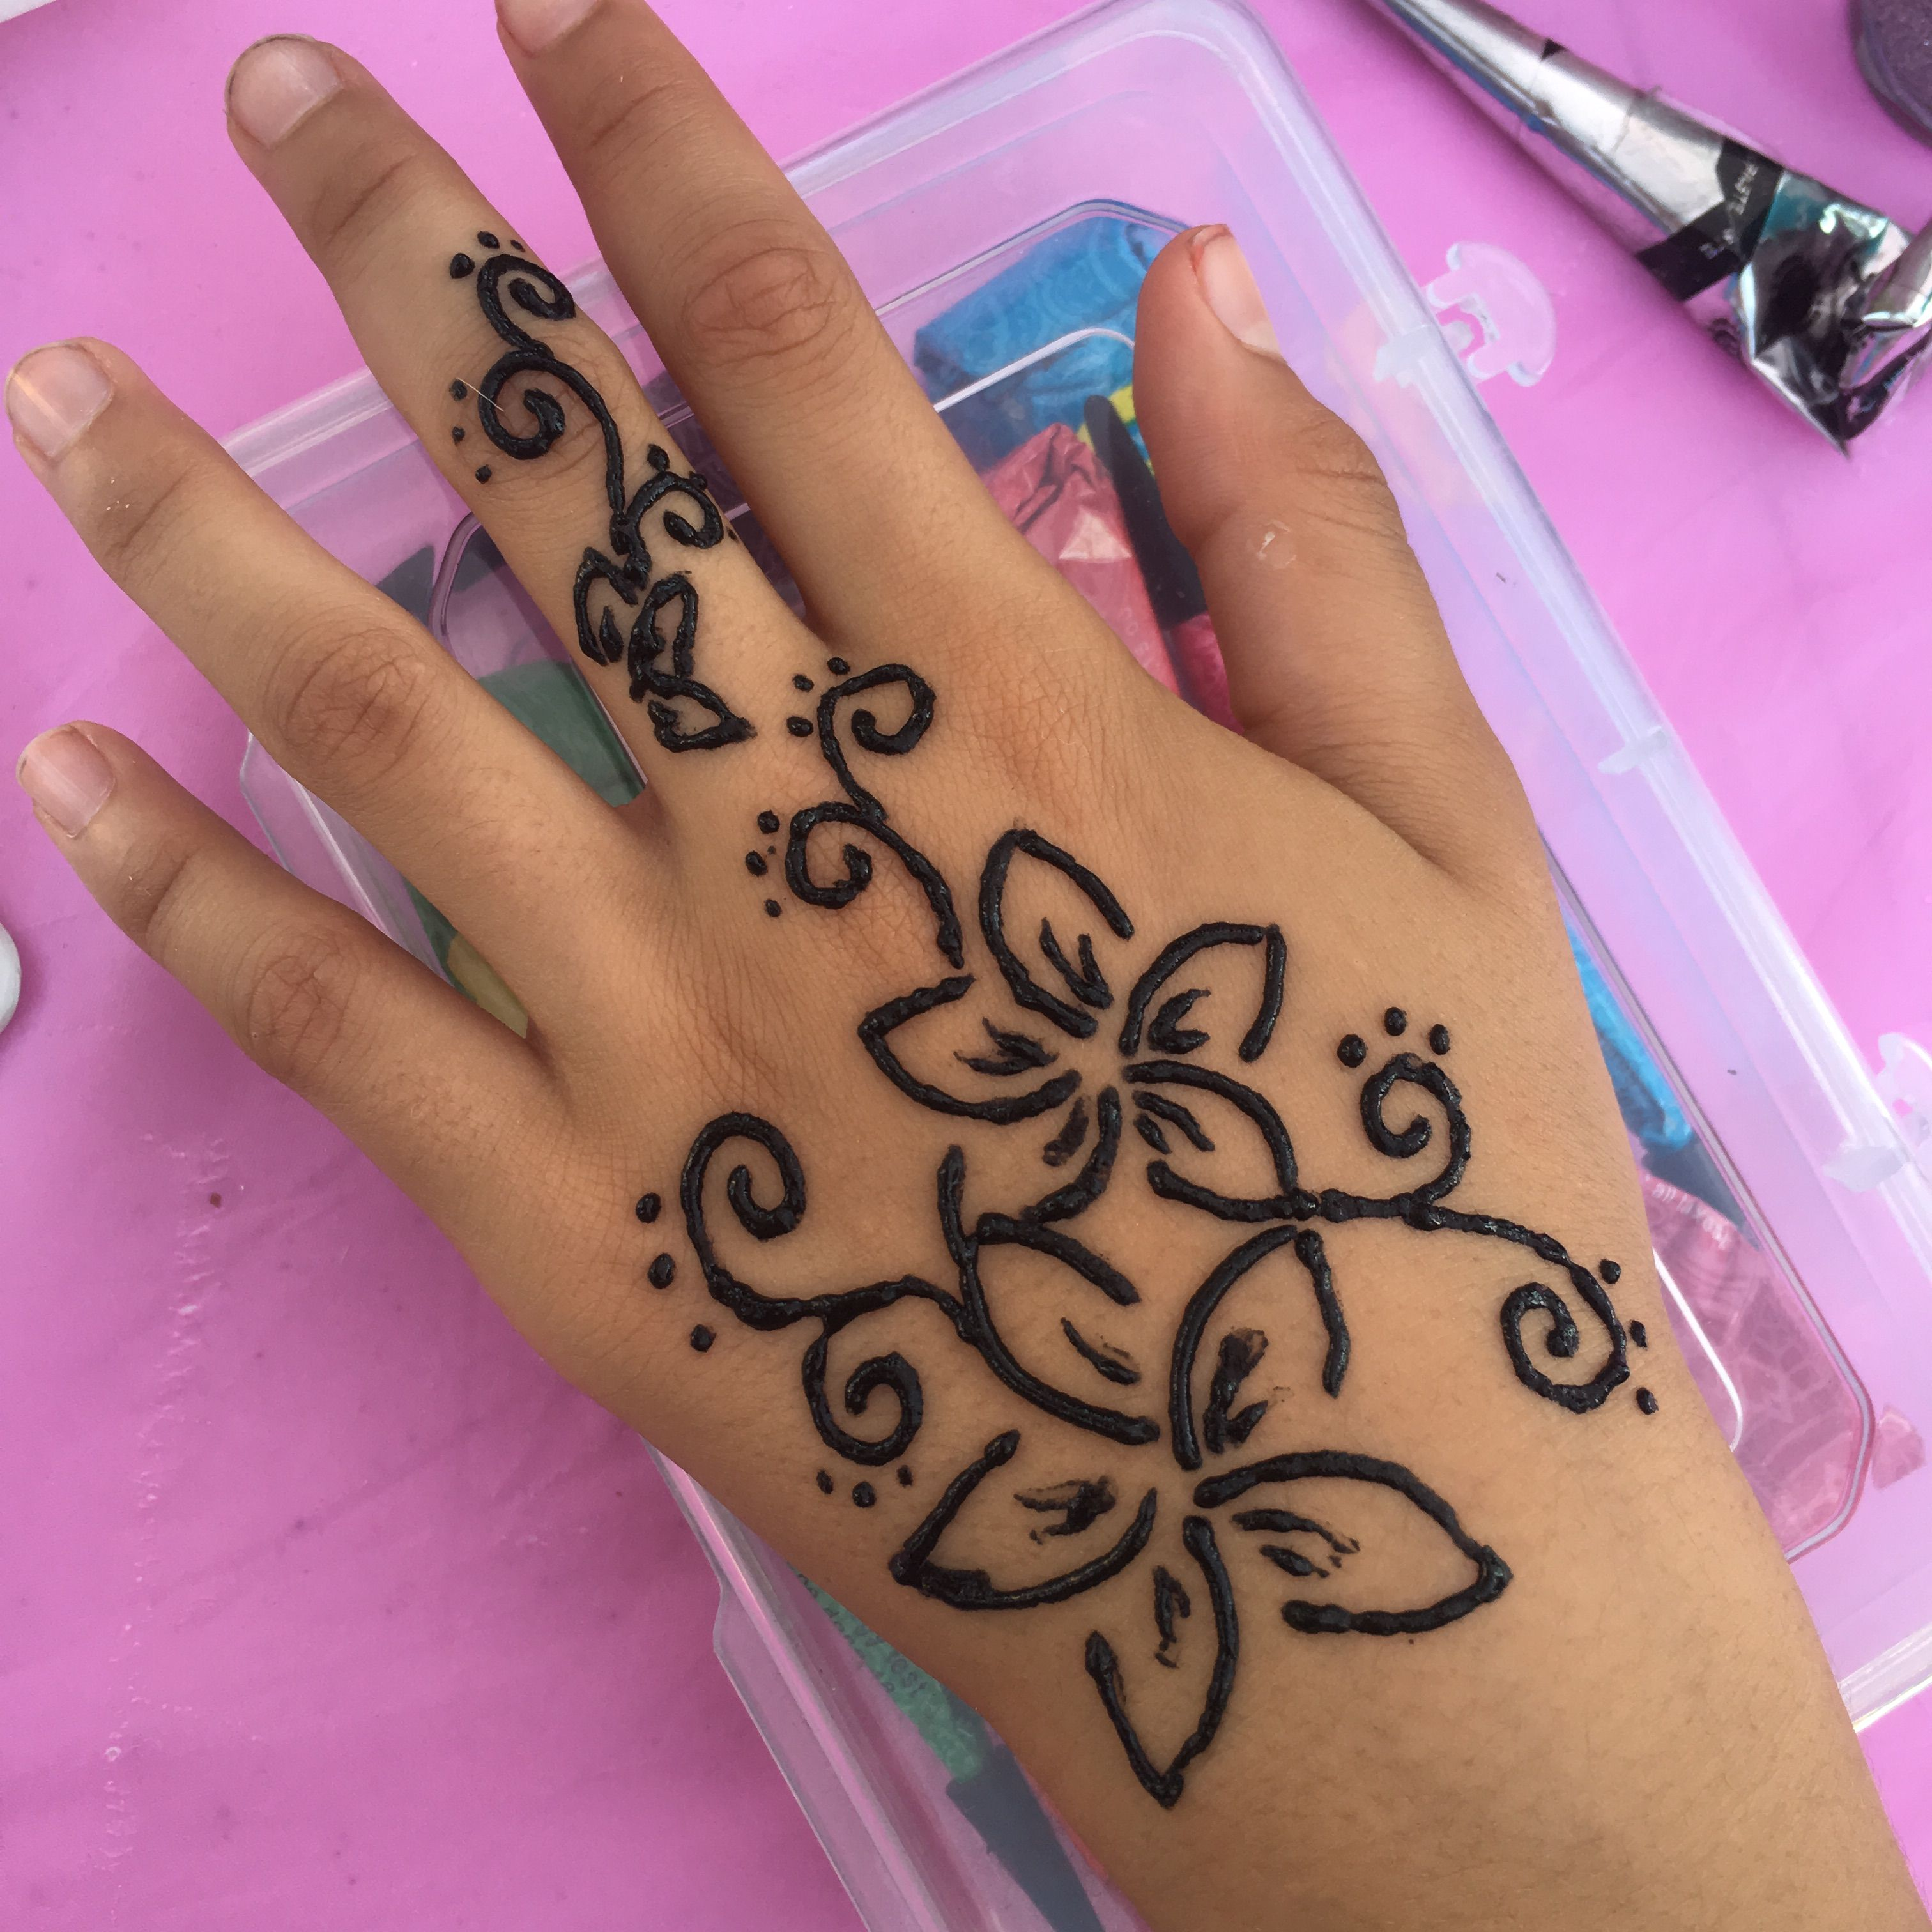 Cute Hand Henna Tattoo Ideas: Cute Henna Flower Design On The Hand